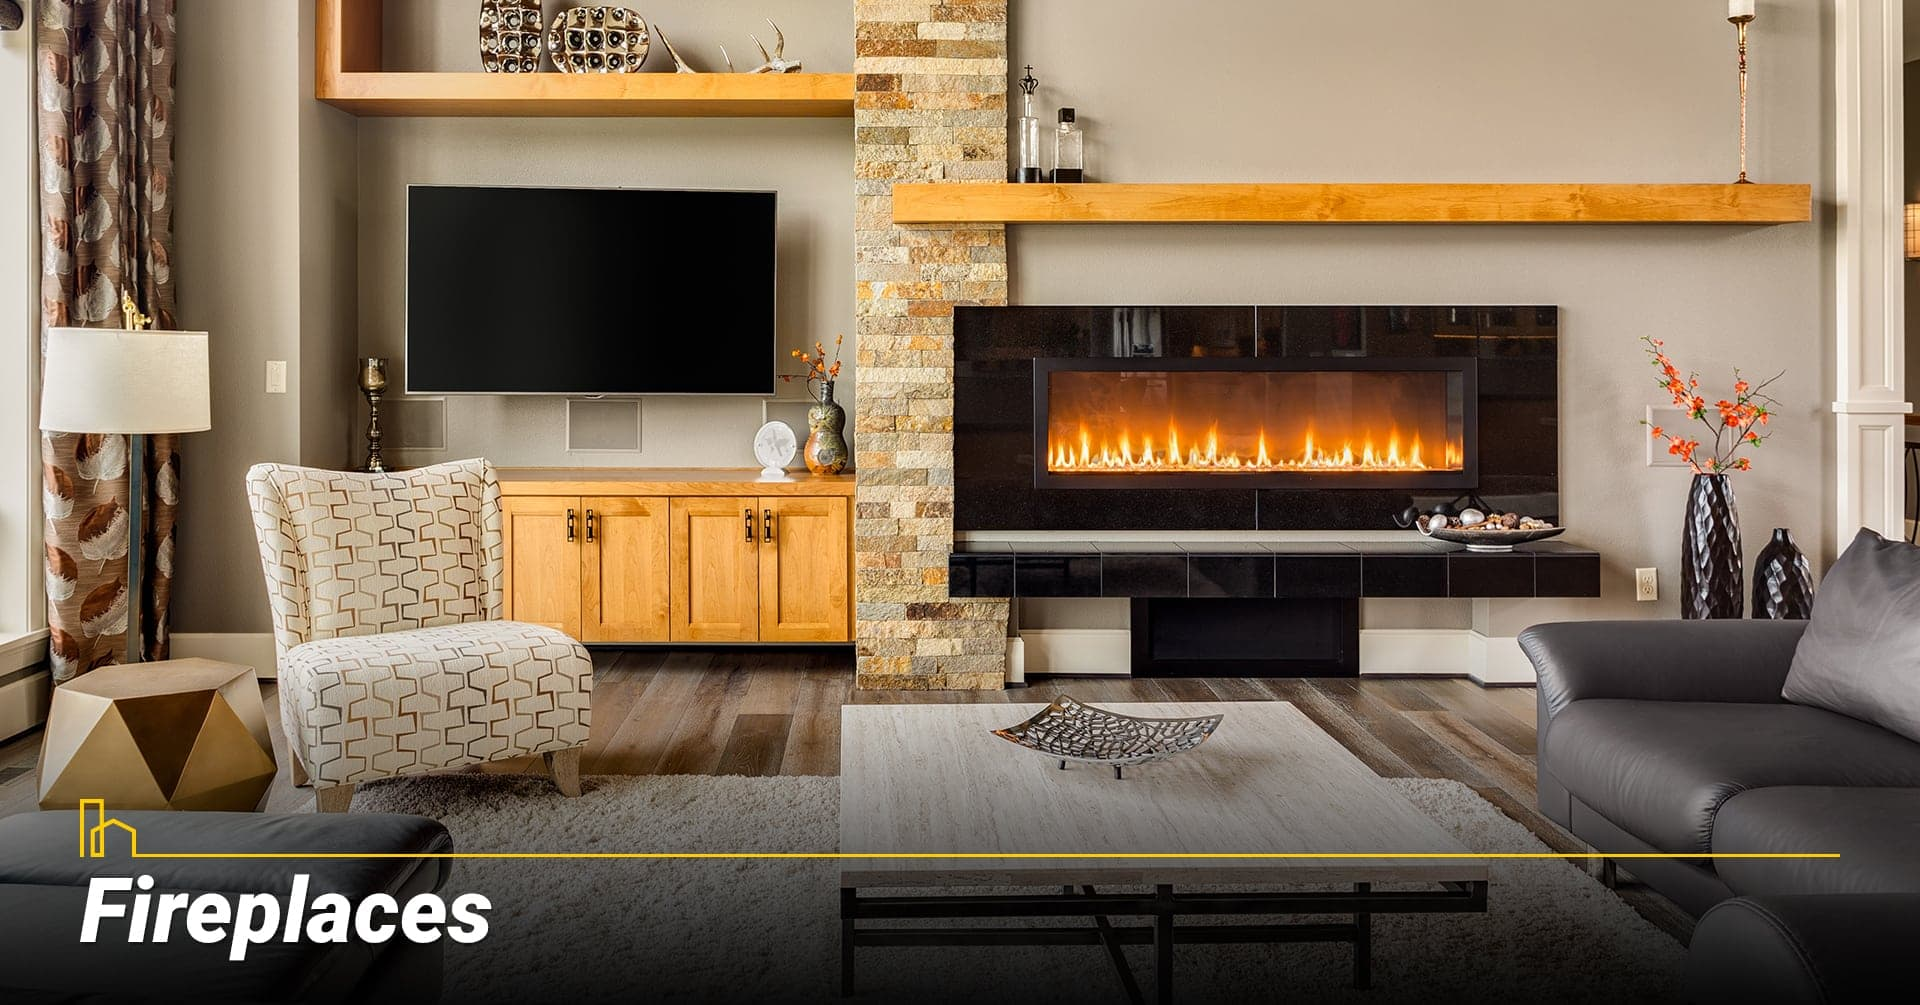 Fireplaces, heat your home with a fireplace